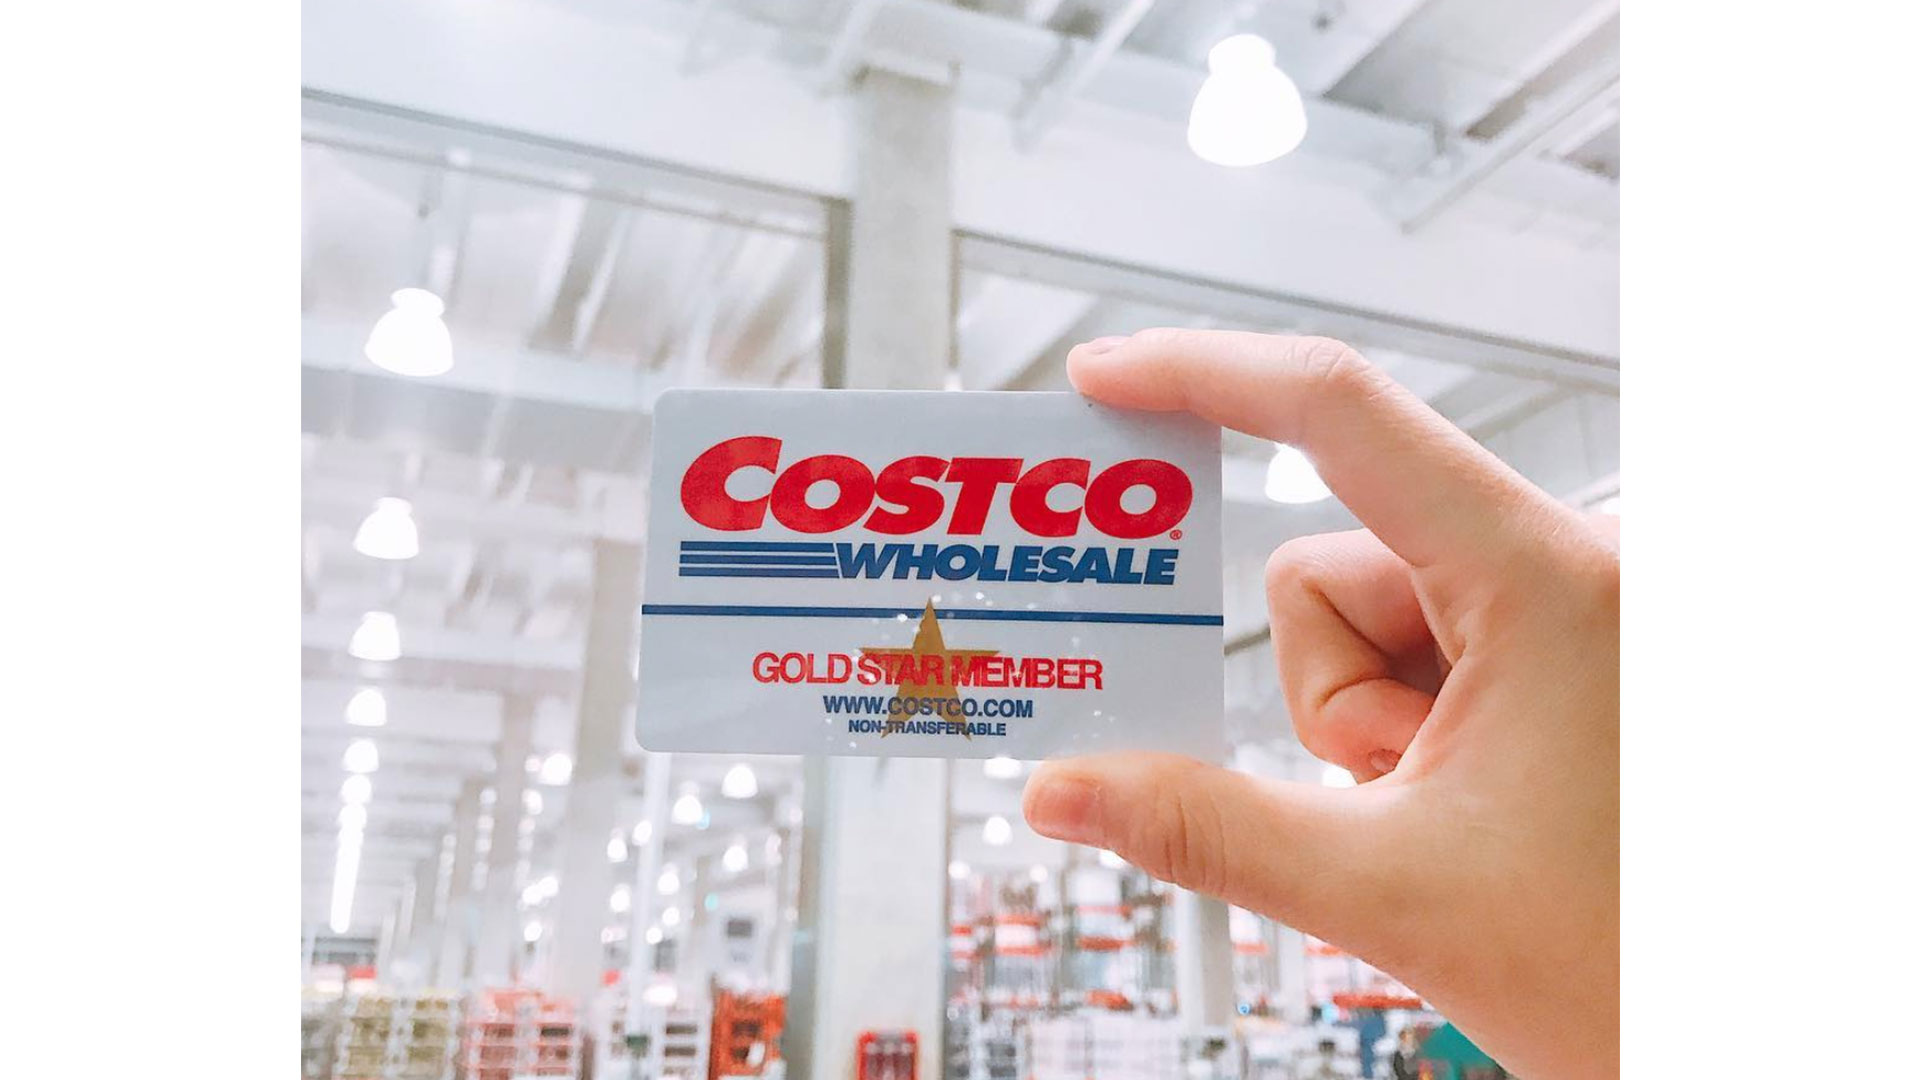 Groupon Just Outdid Itself With This Crazy Costco Deal - Southern Living